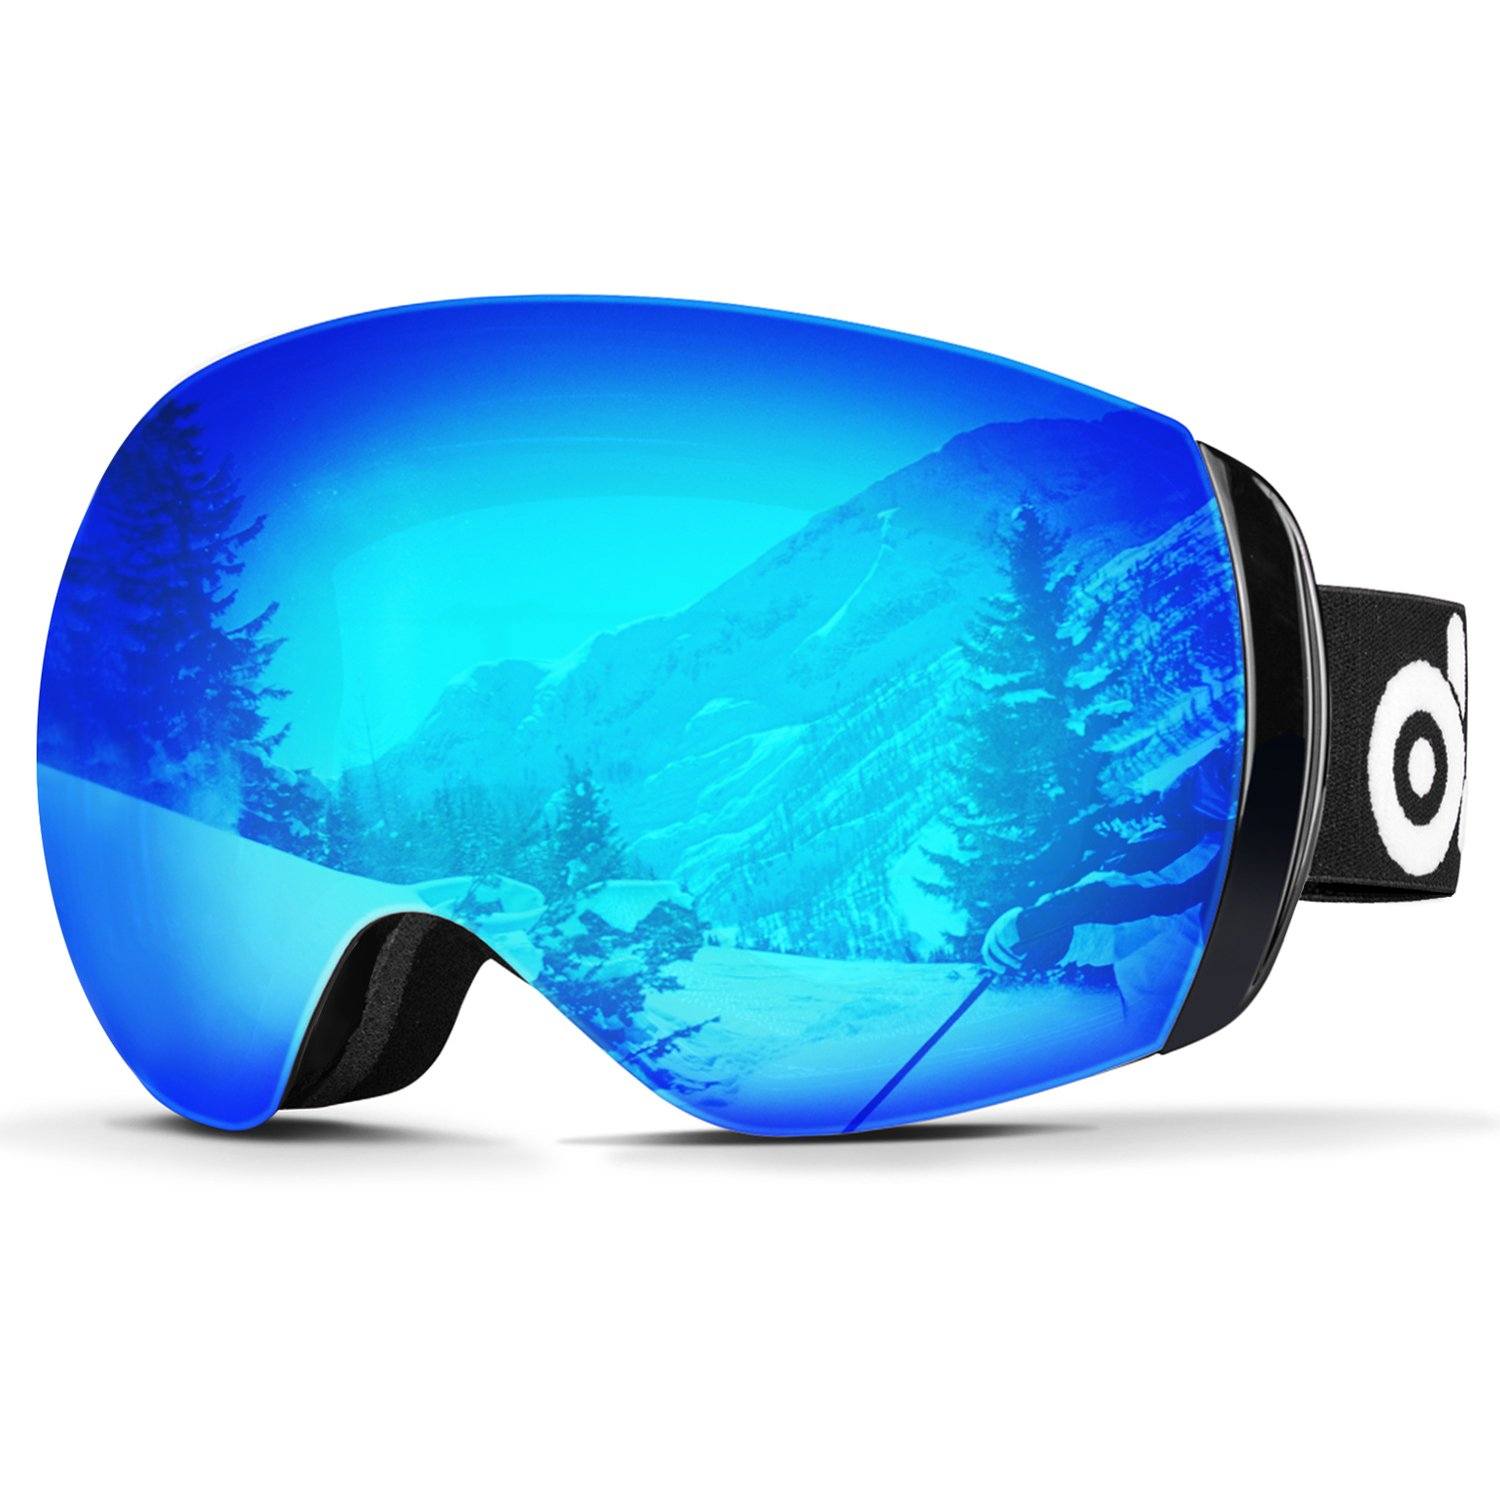 da3d657dc4a5 Amazon.com   Odoland Large Spherical Frameless Ski Goggles for Men ...